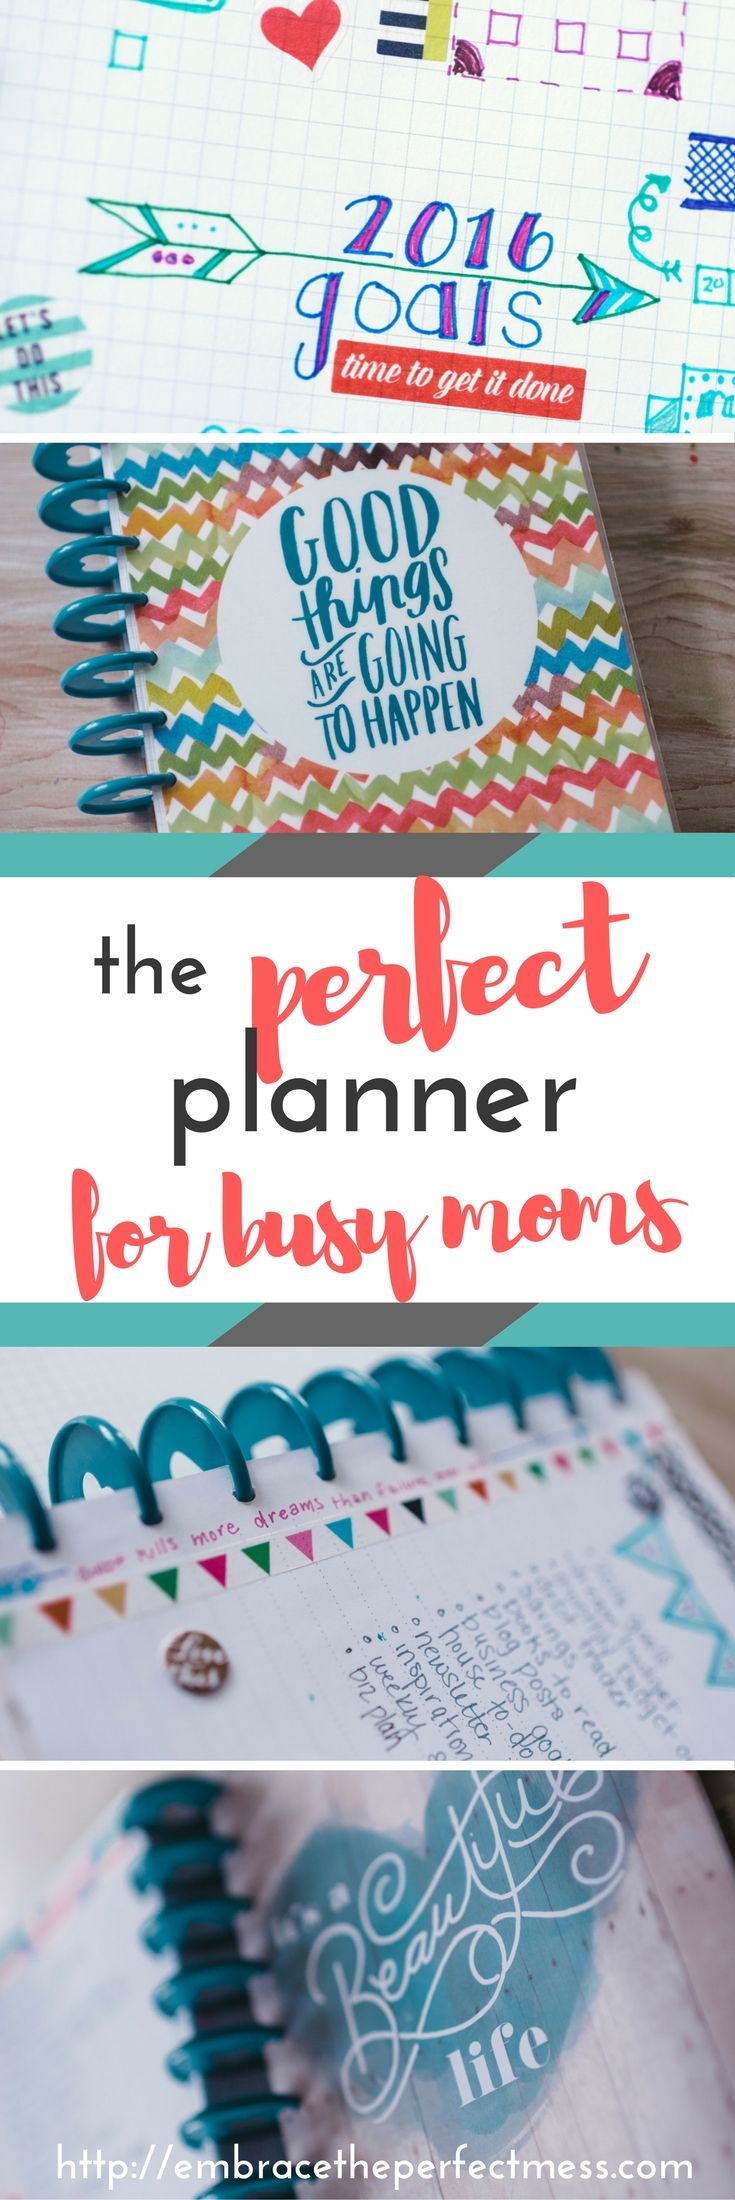 This is the best planner for busy moms. I am so happy I found one that is so versatile, and has so many options. Plus, all of the designs are so pretty!